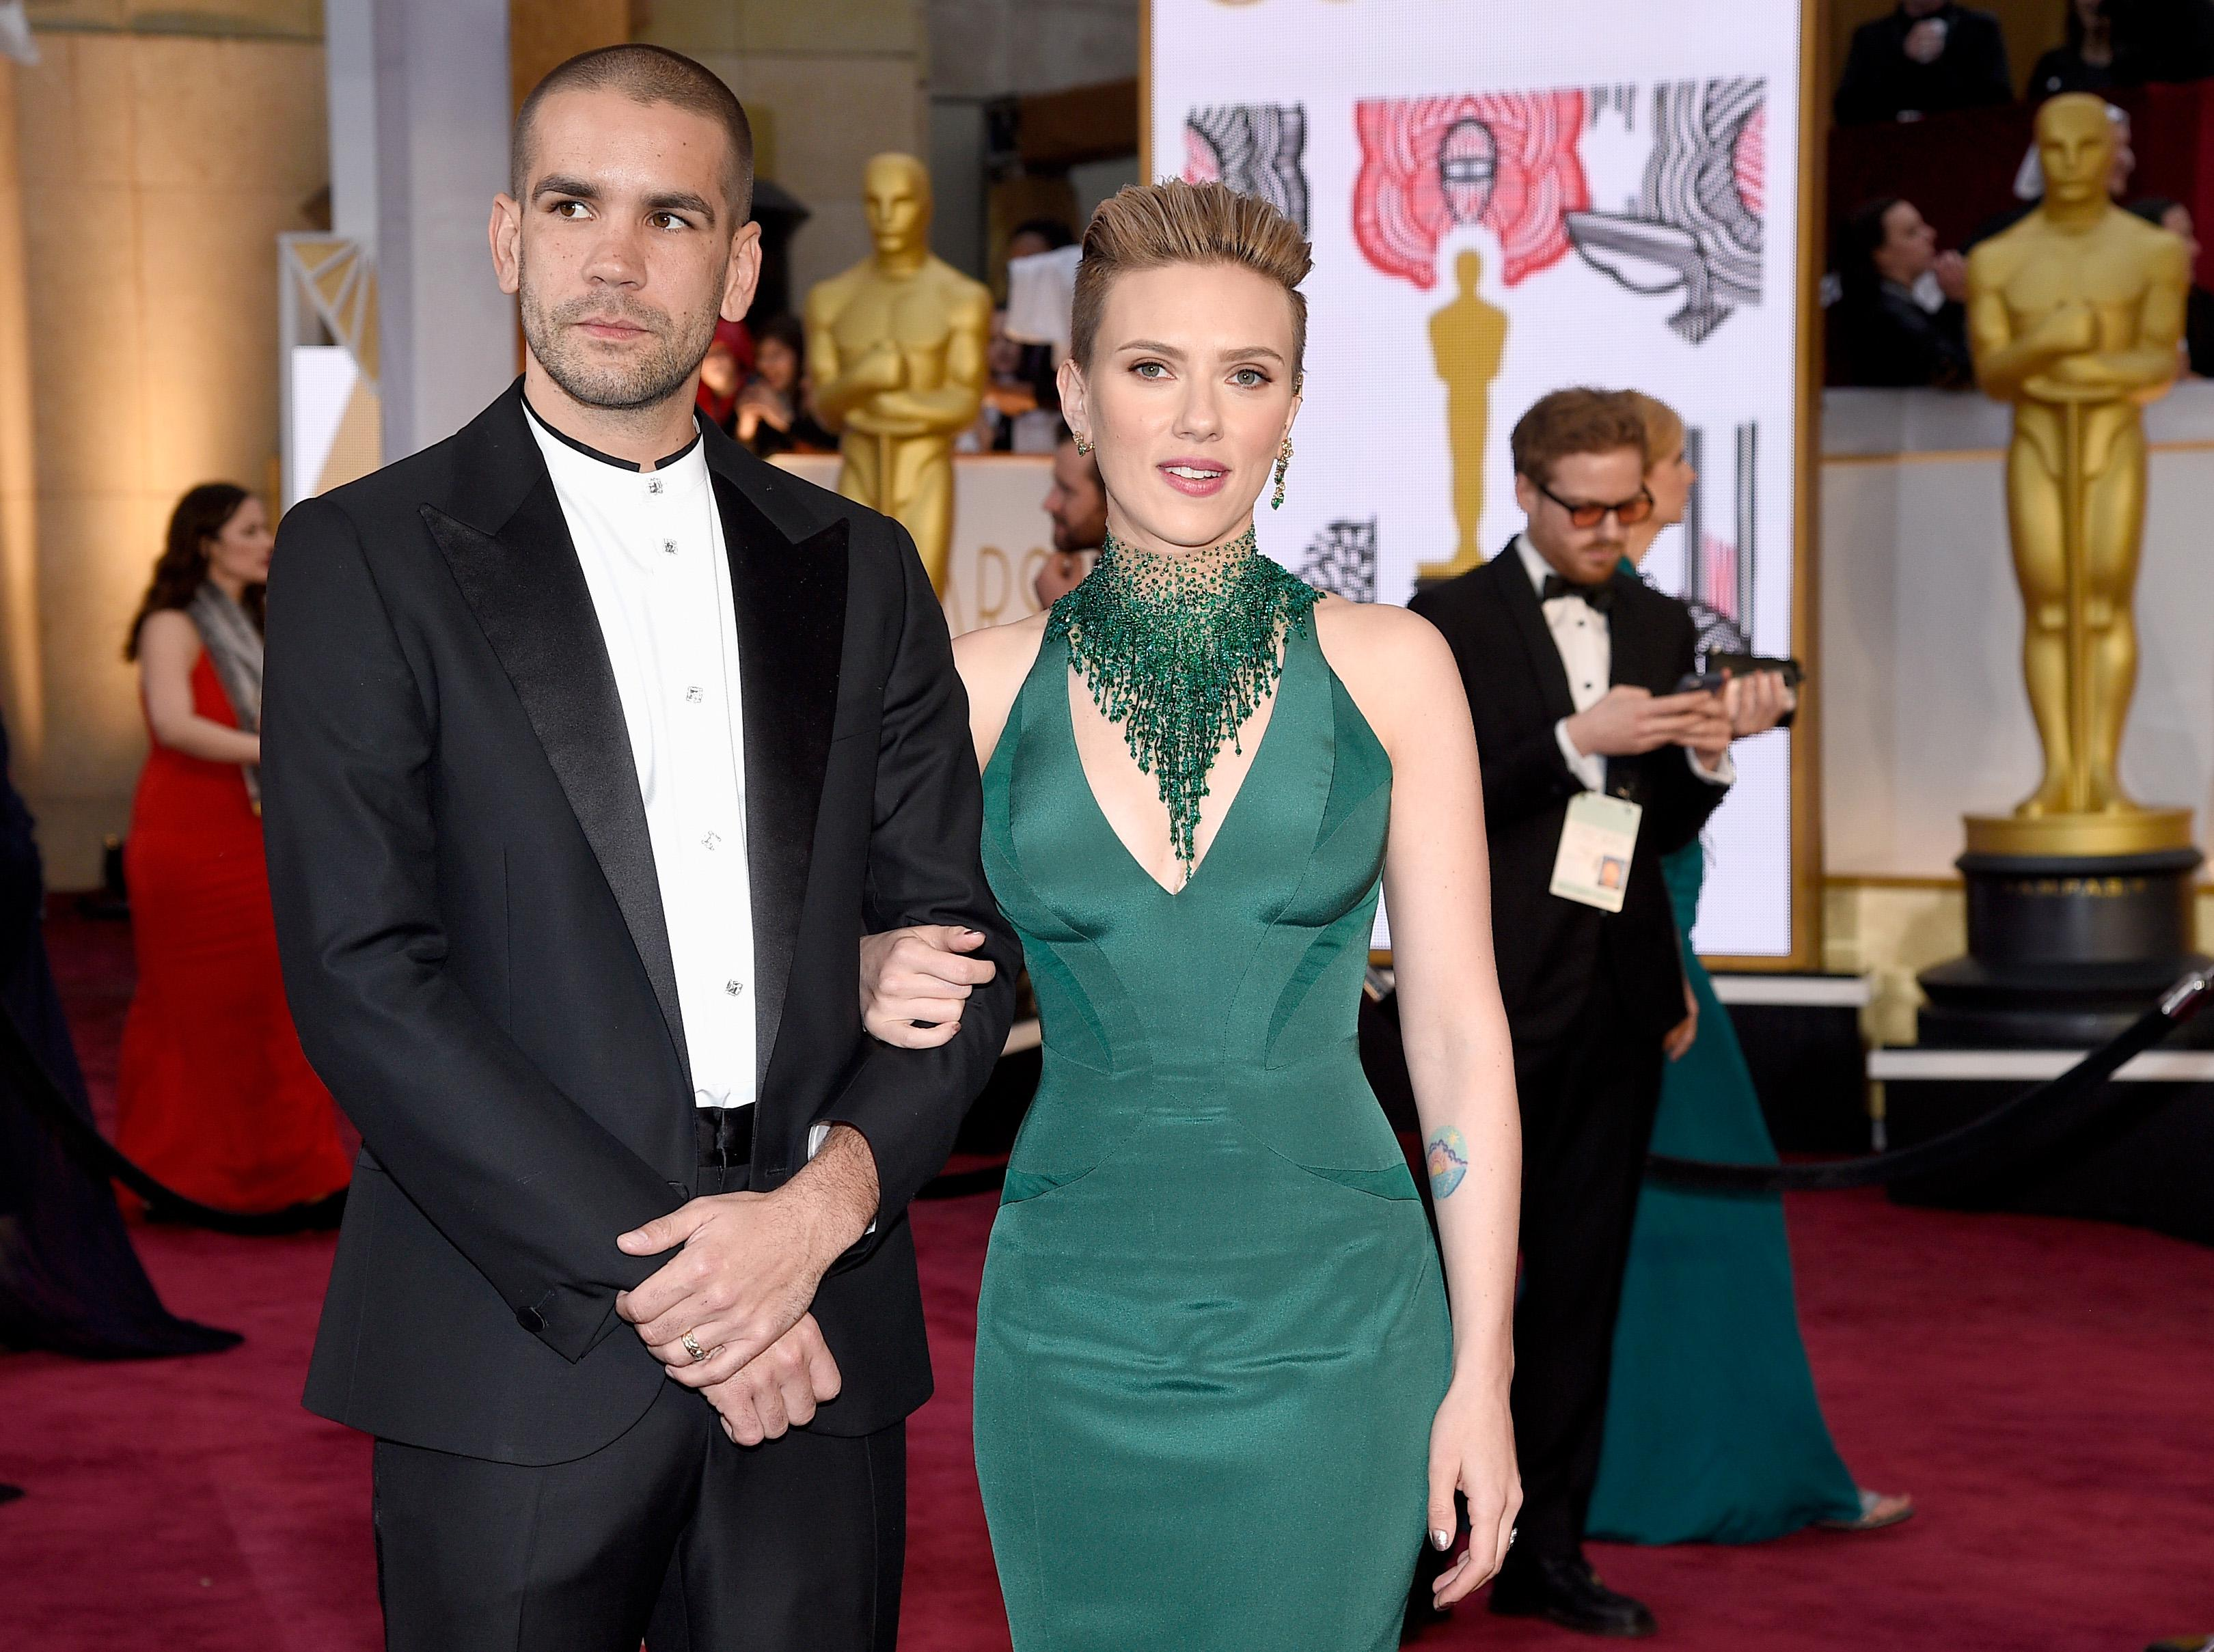 Scarlett Johansson and Romain Dauriac Have Split After Two Years of Marriage